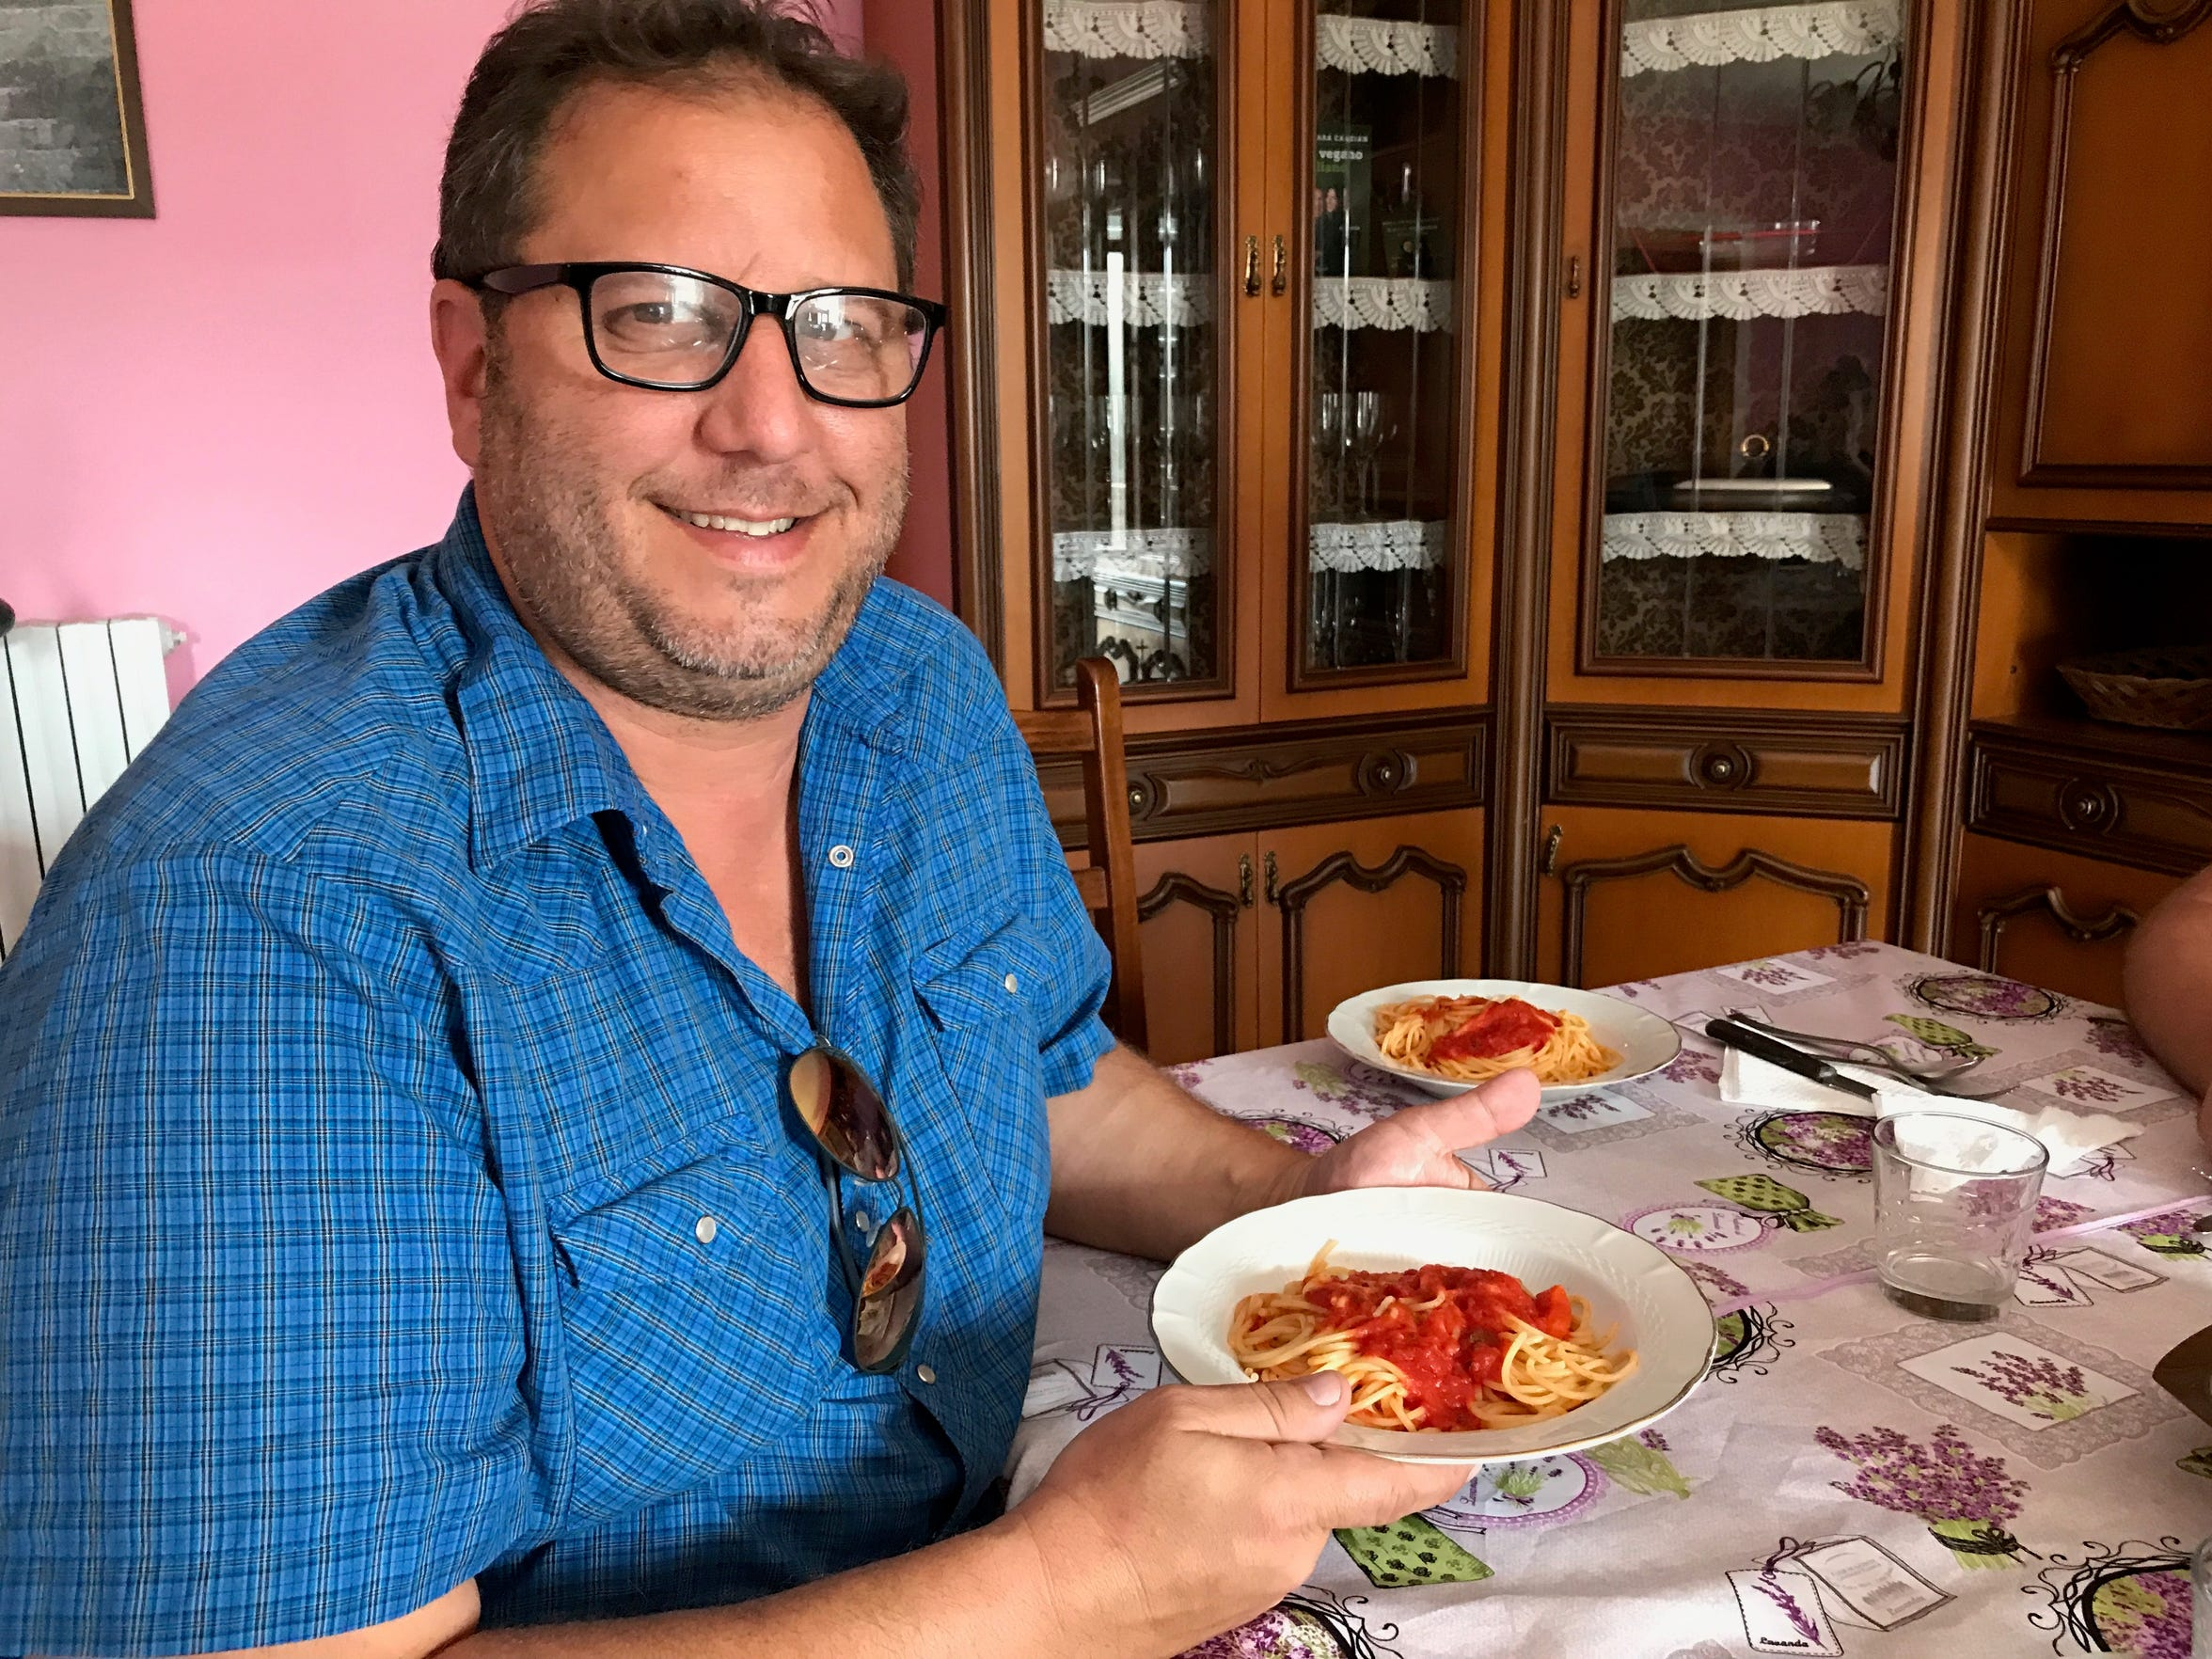 Rick Marino with a homemade meal in Guardia Lombardi